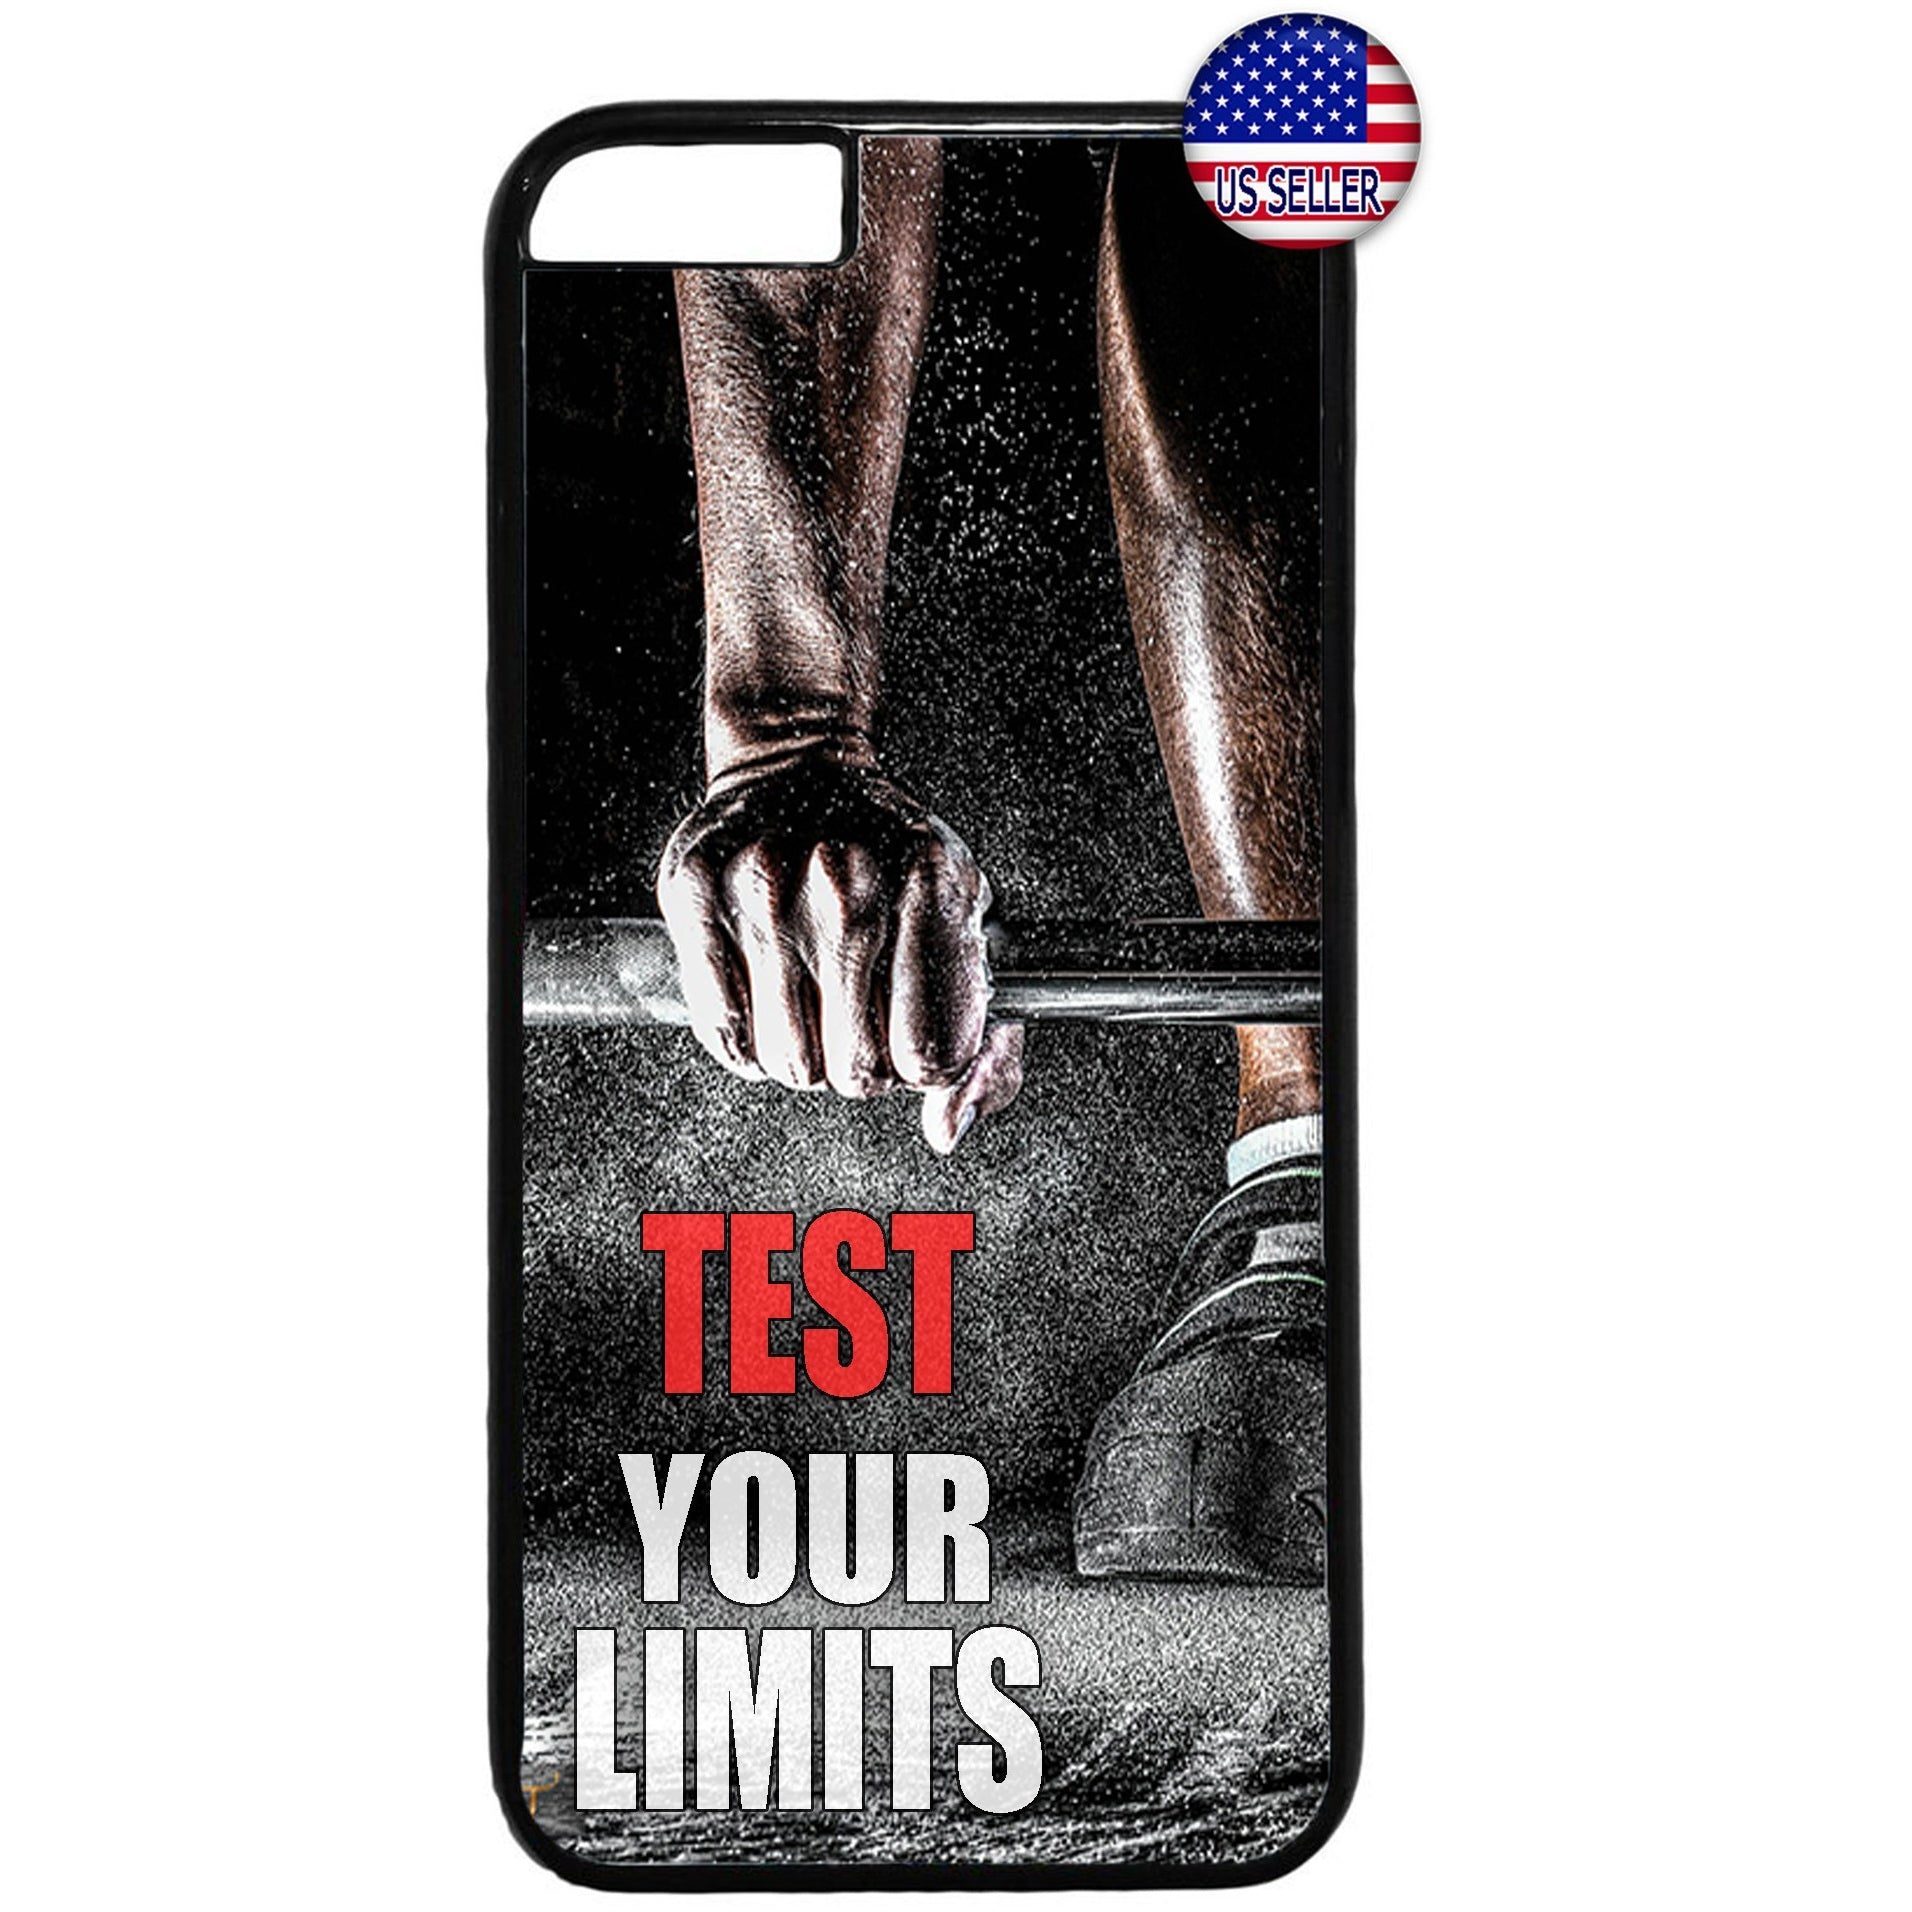 Test Your Limits Workout Rubber Case Cover For Iphone